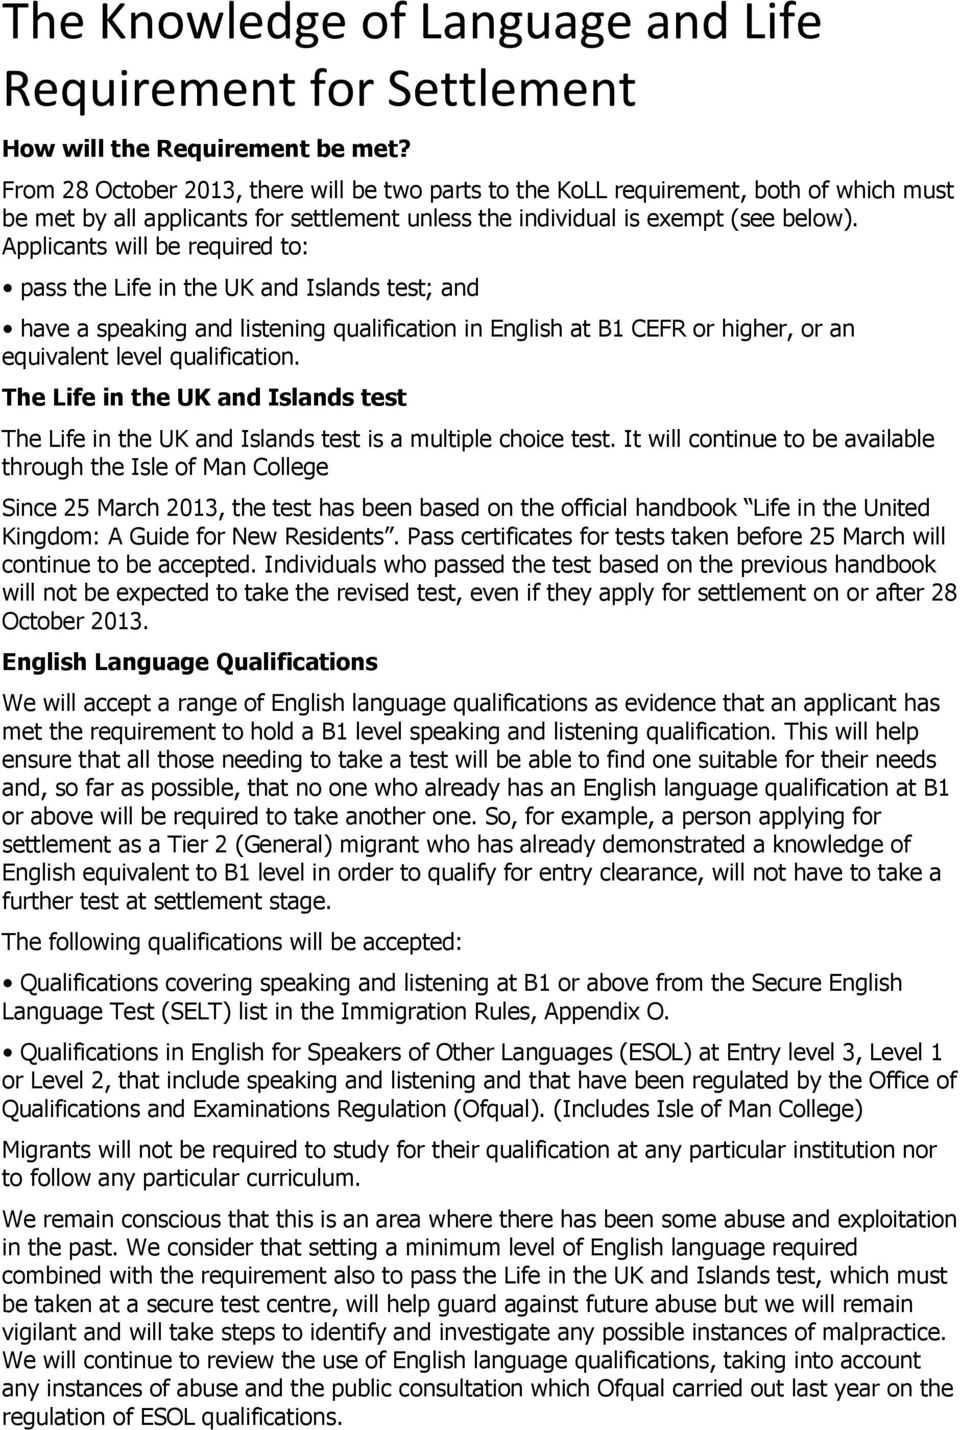 Applicants will be required to: pass the Life in the UK and Islands test; and have a speaking and listening qualification in English at B1 CEFR or higher, or an equivalent level qualification.